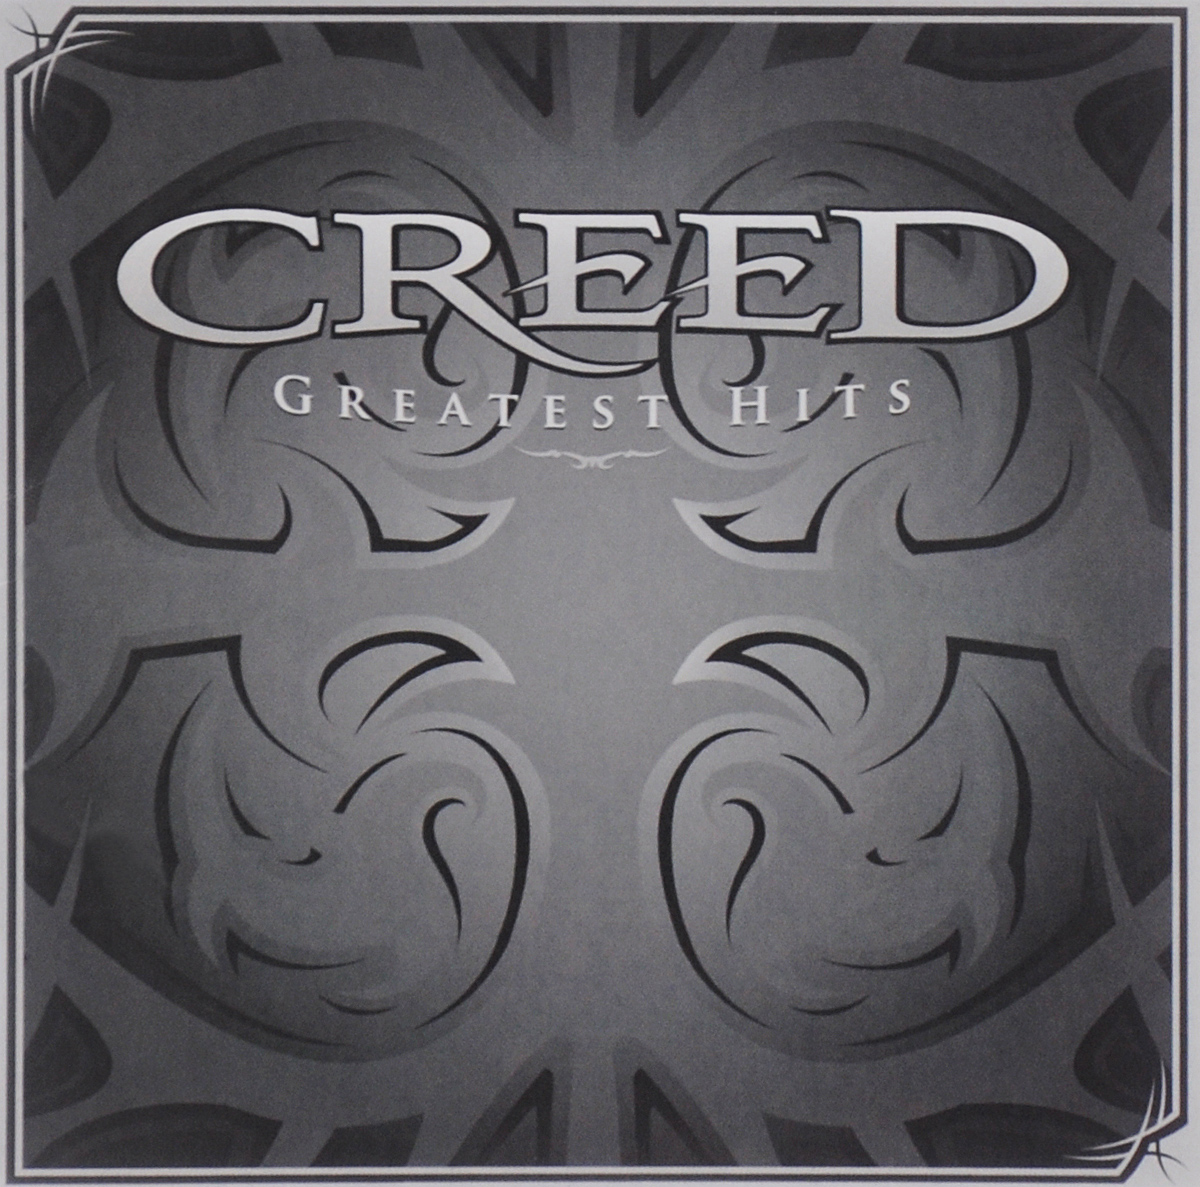 Creed Creed. Greatest Hits queen greatest hits cd